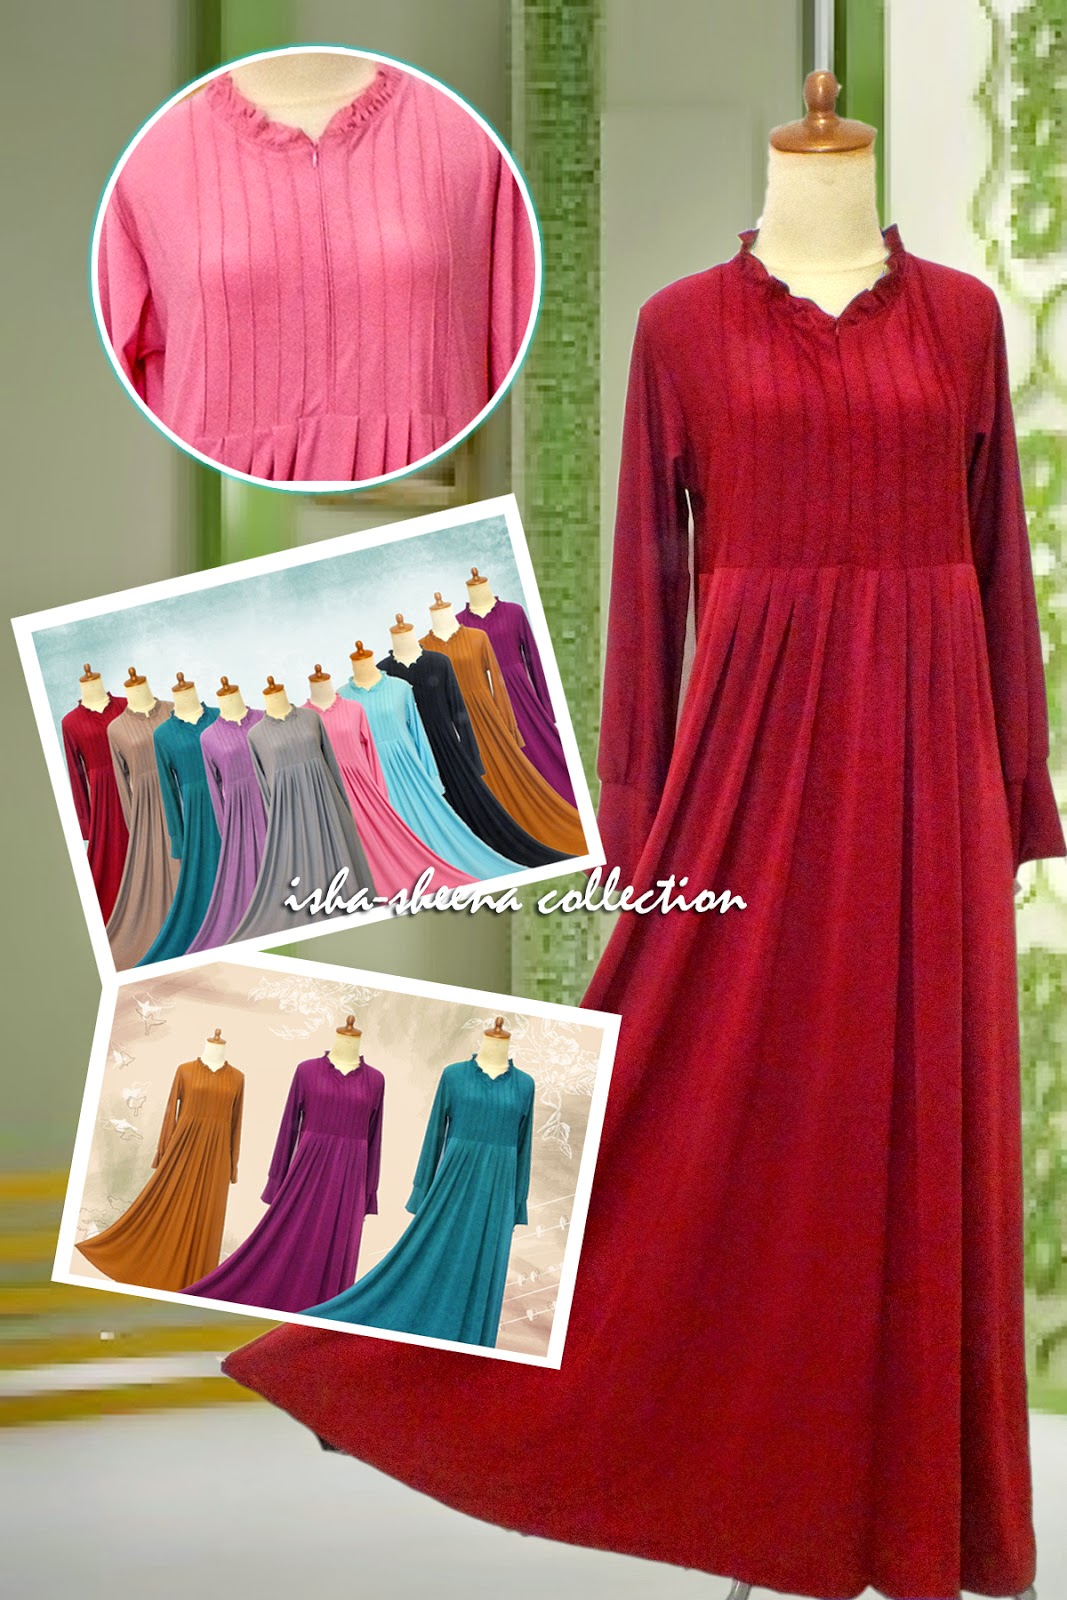 Gamis Jersey Rempel Sheena Collection